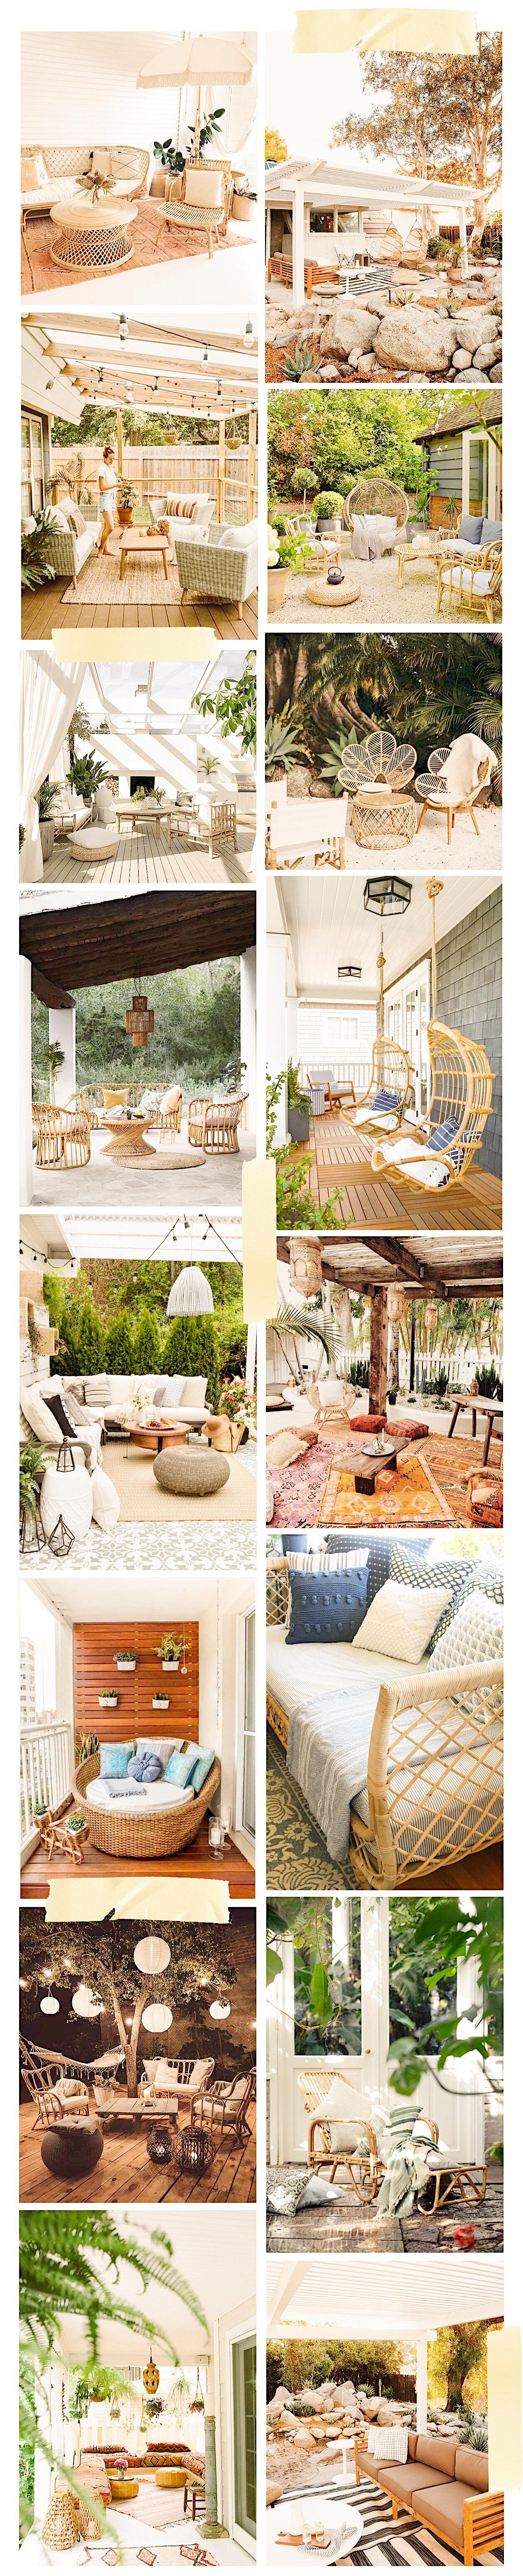 Our First House: Backyard Inspiration